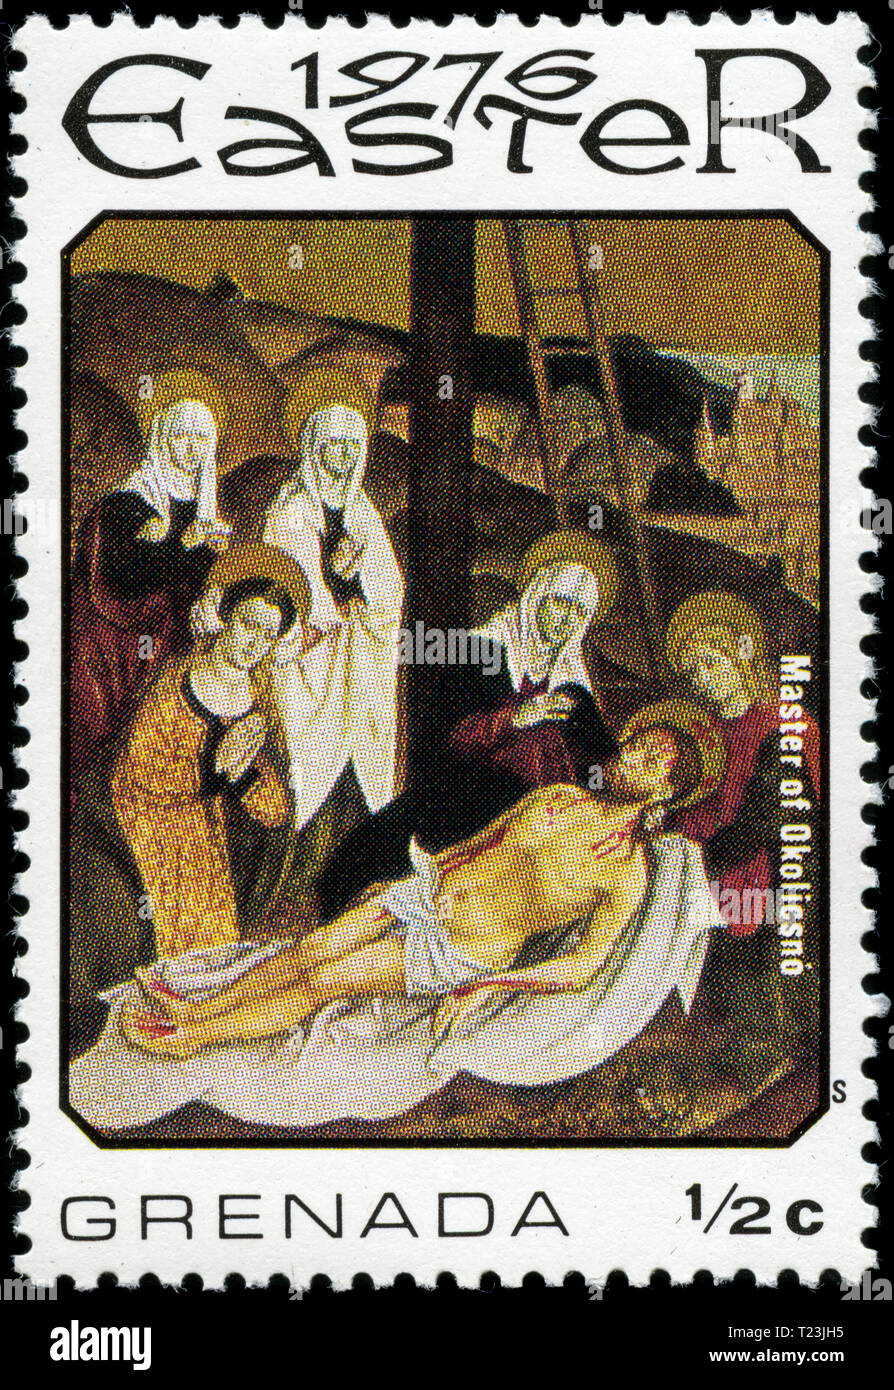 Postage stamp from Grenada in the Easter series issued in 1976 - Stock Image